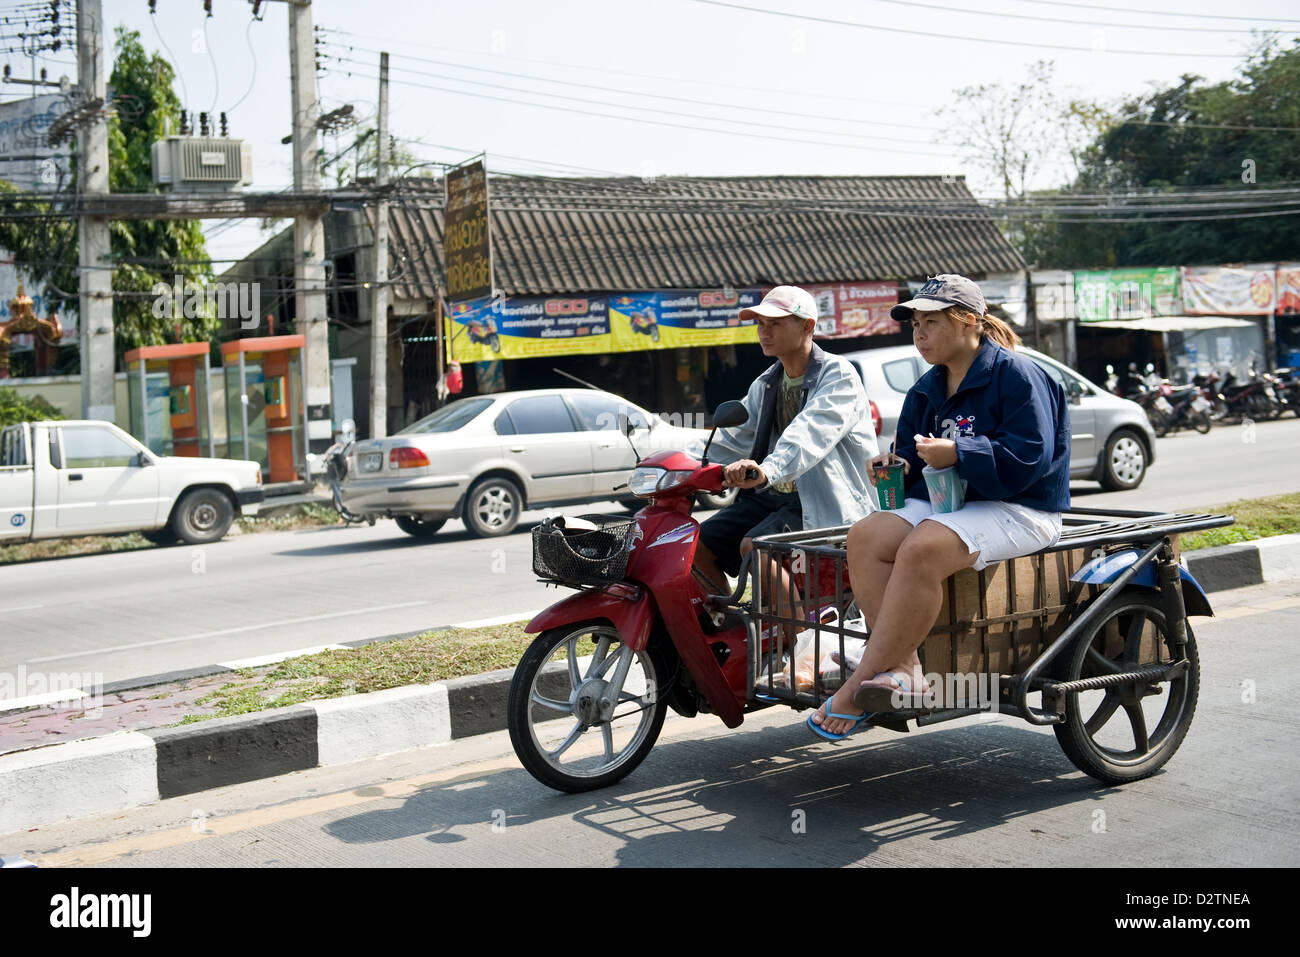 Sidecar Passenger Stock Photos Images Tt2011 Sidecars Chiang Mai Thailand Scooter With On A Woman Sitting Drinks Laessig